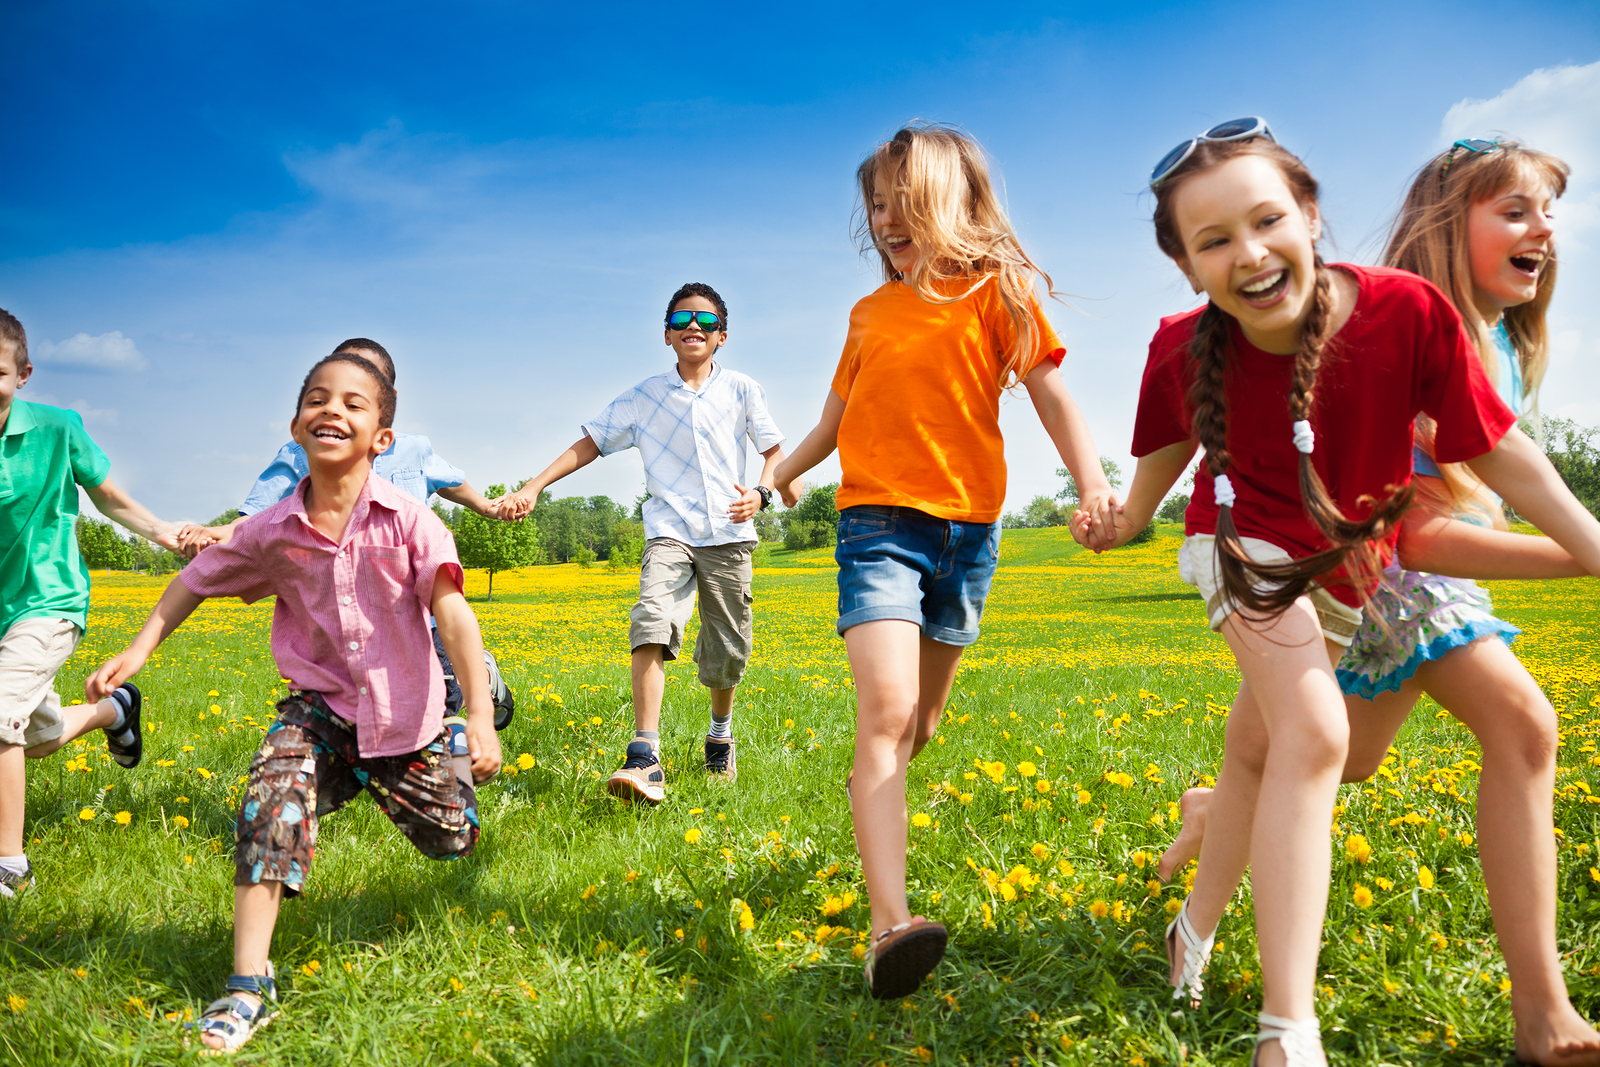 bigstock-Group-Of-Running-Kids-48113744.